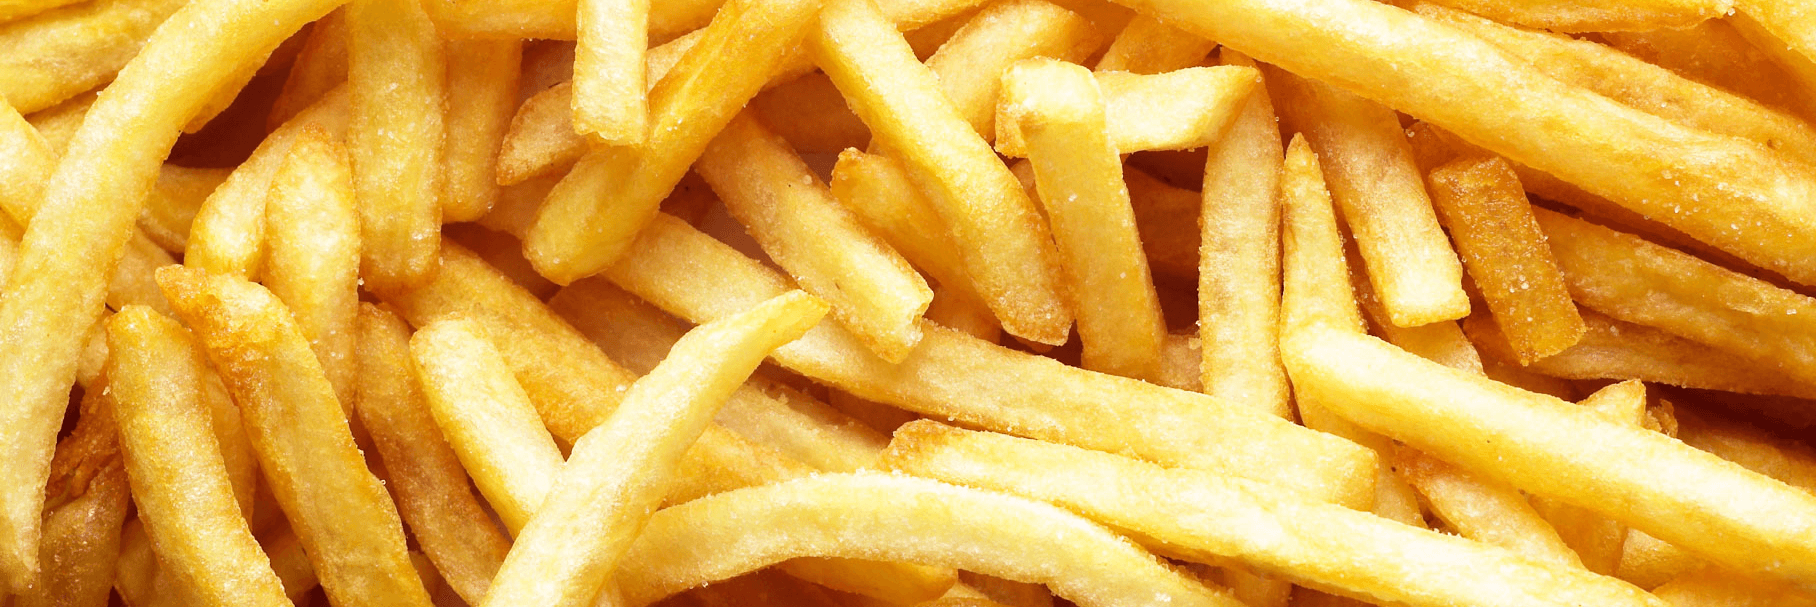 Close up of french fries.